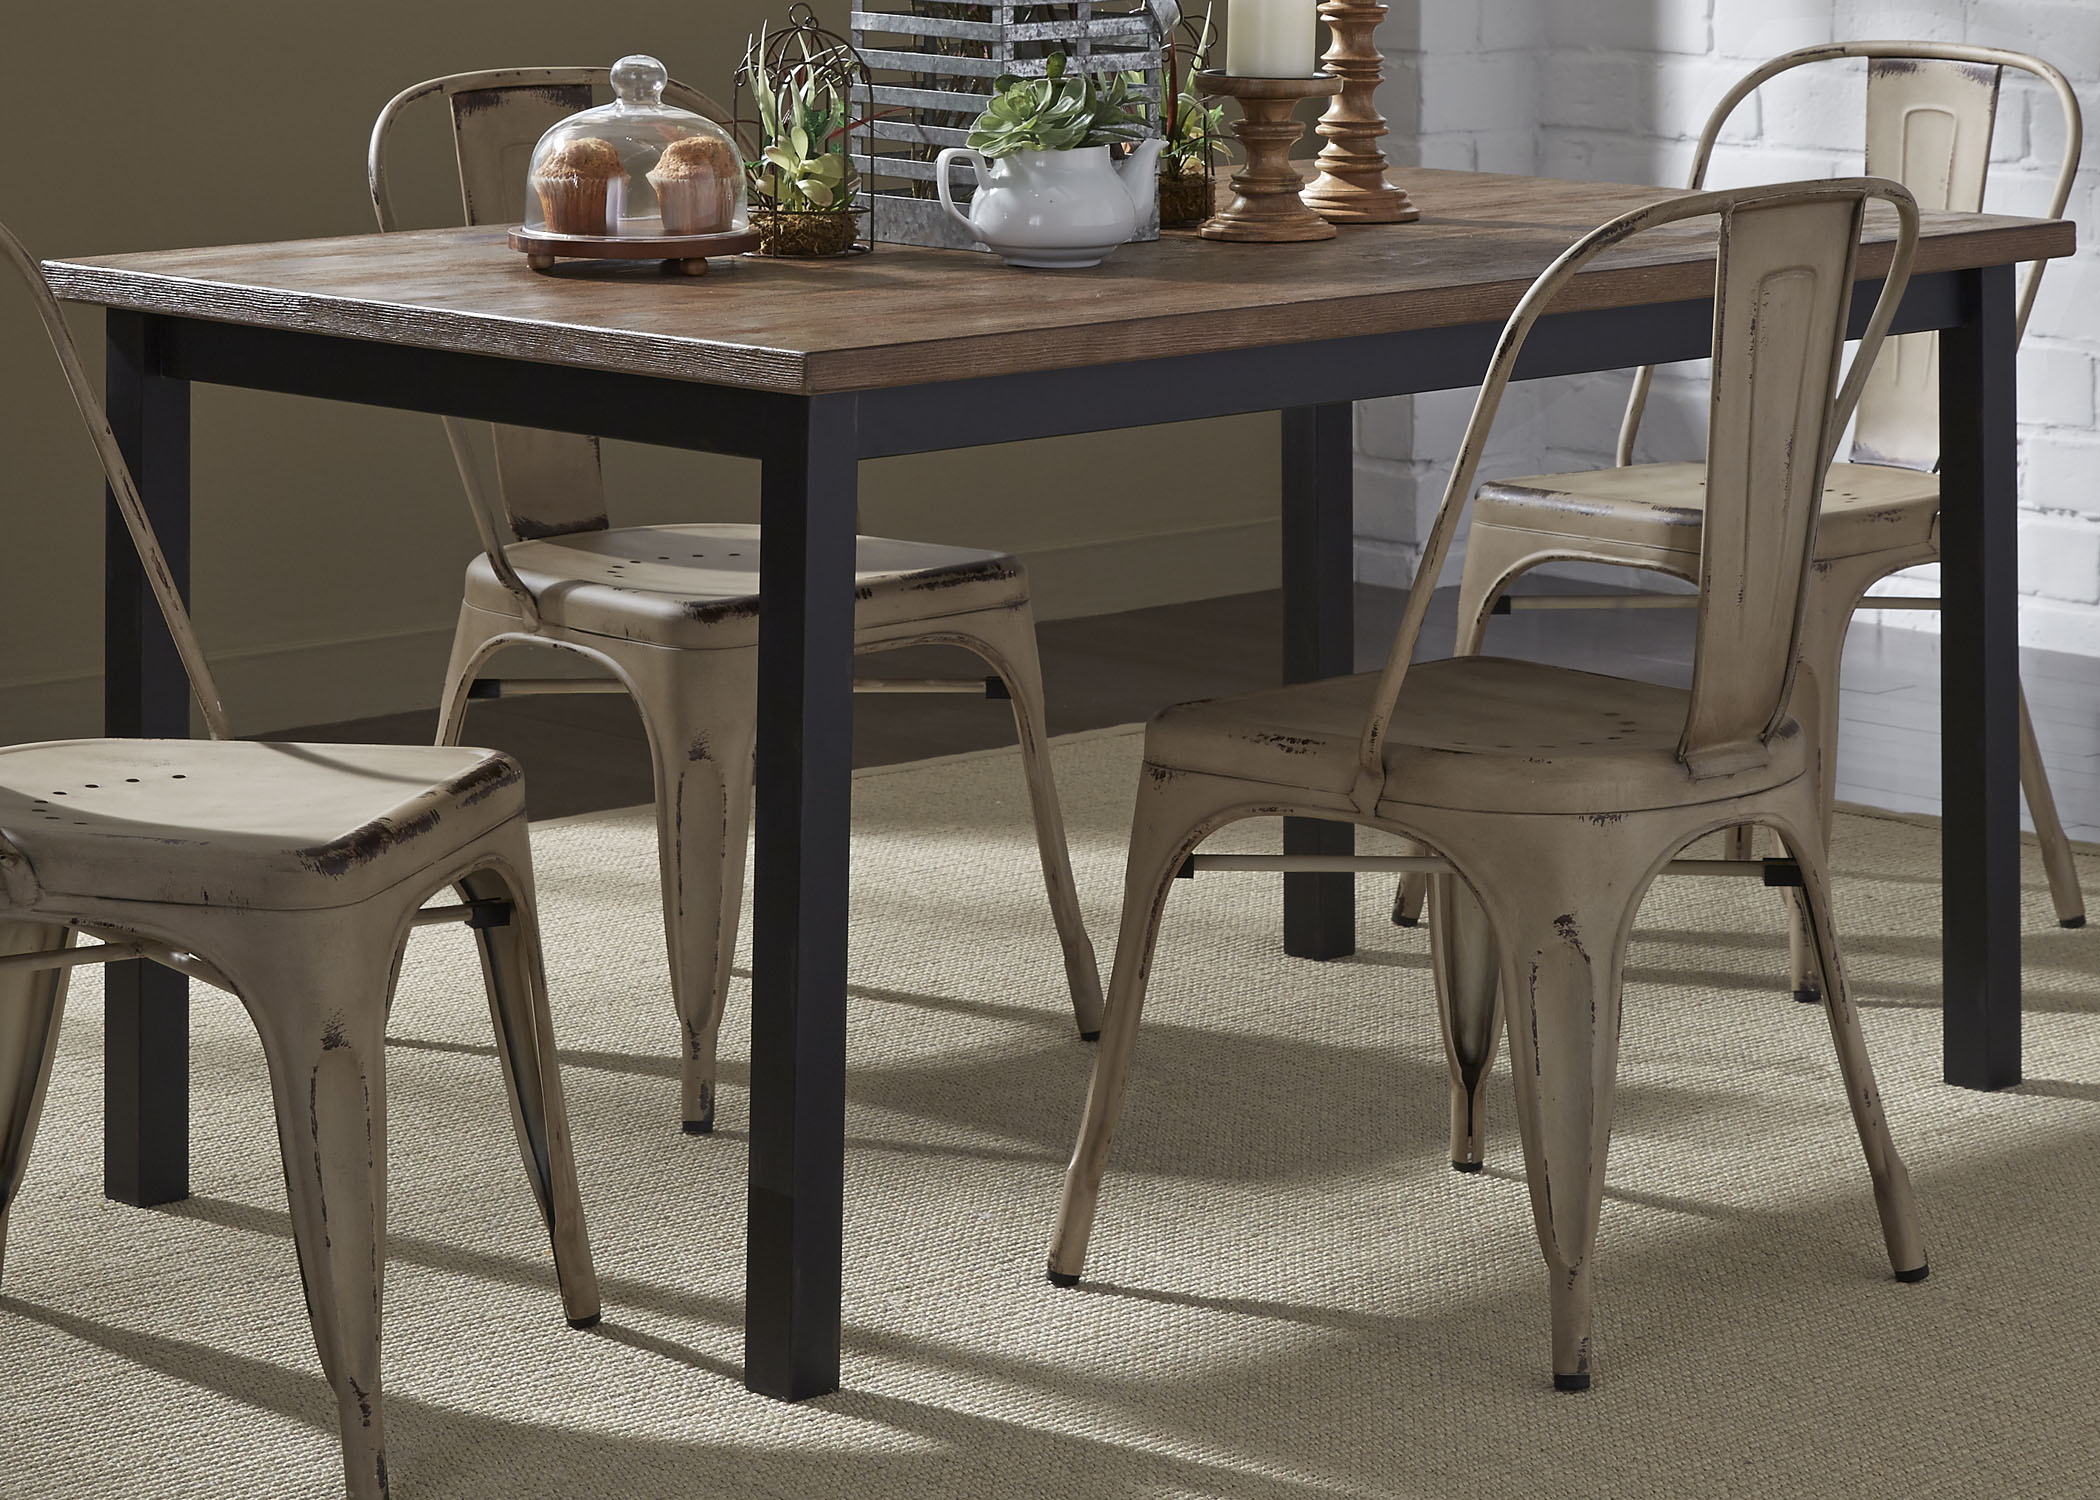 Vintage Dining Series Rectangular Leg Table by Libby at Walker's Furniture